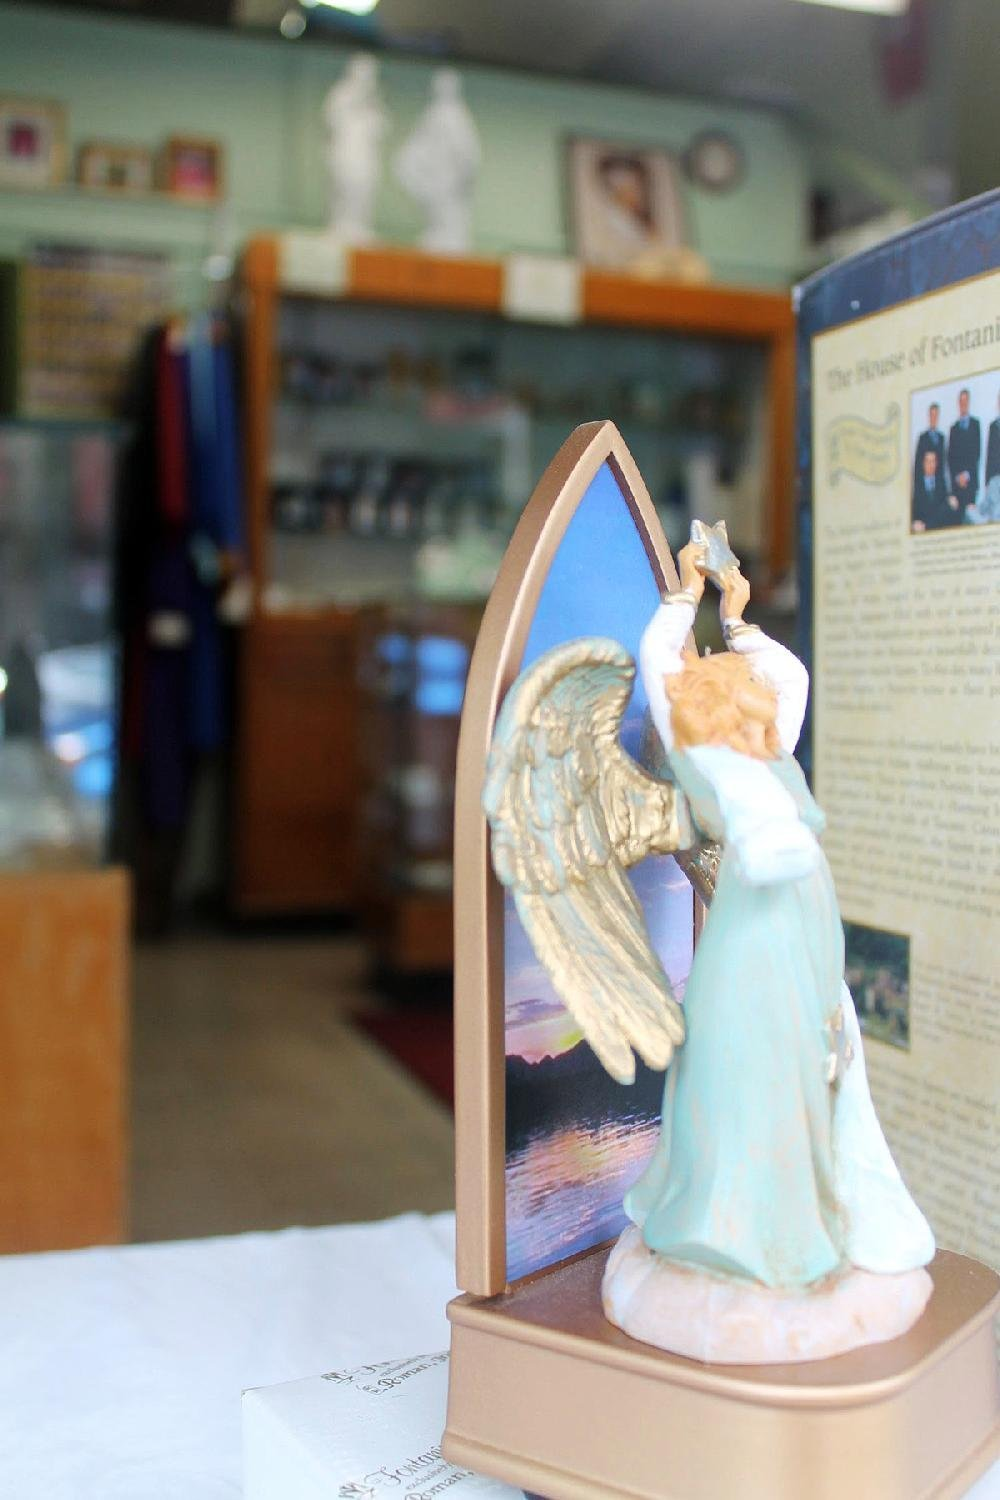 End of an era: Little Rock store selling Catholic gifts